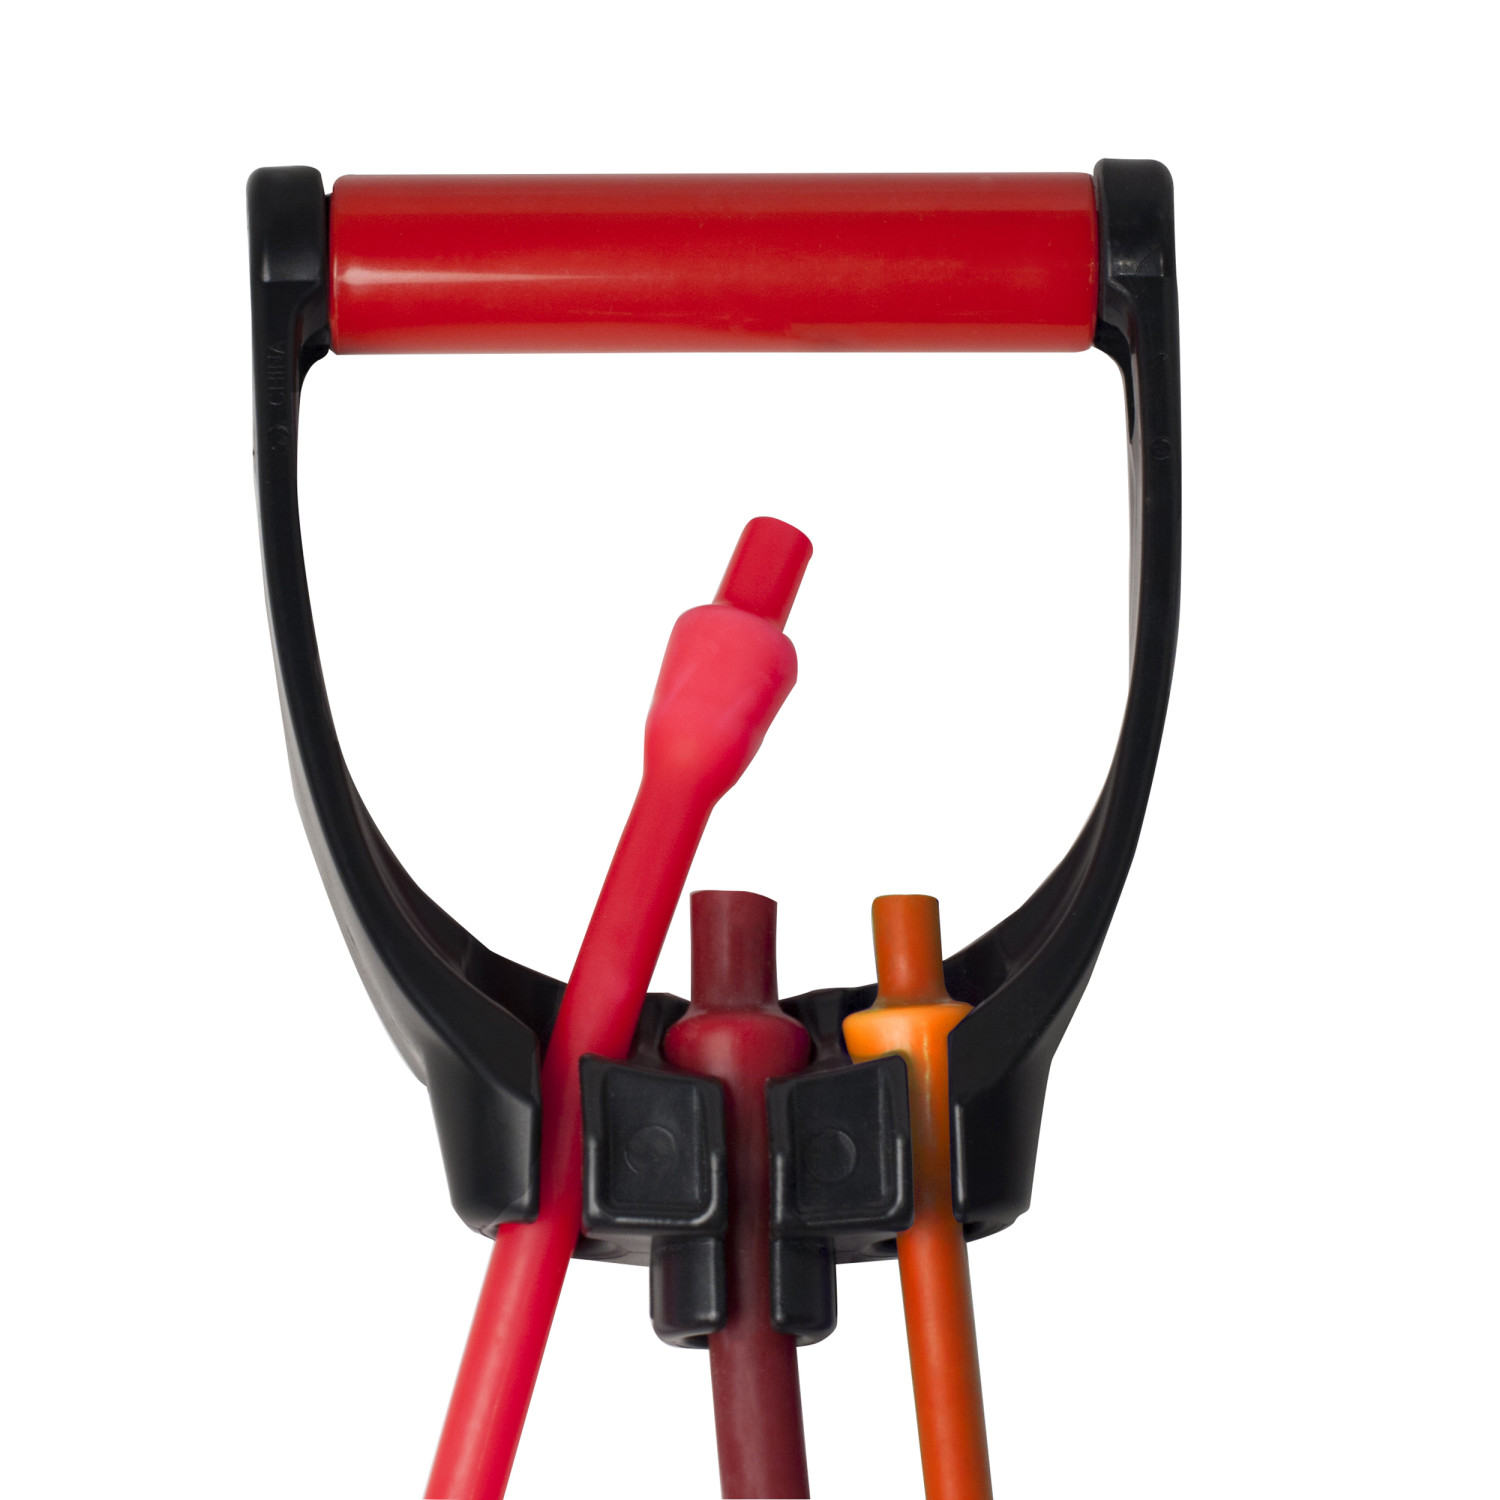 NEW Triple Grip Handles Fit Up To Three Resistance Cables For Muscle Training